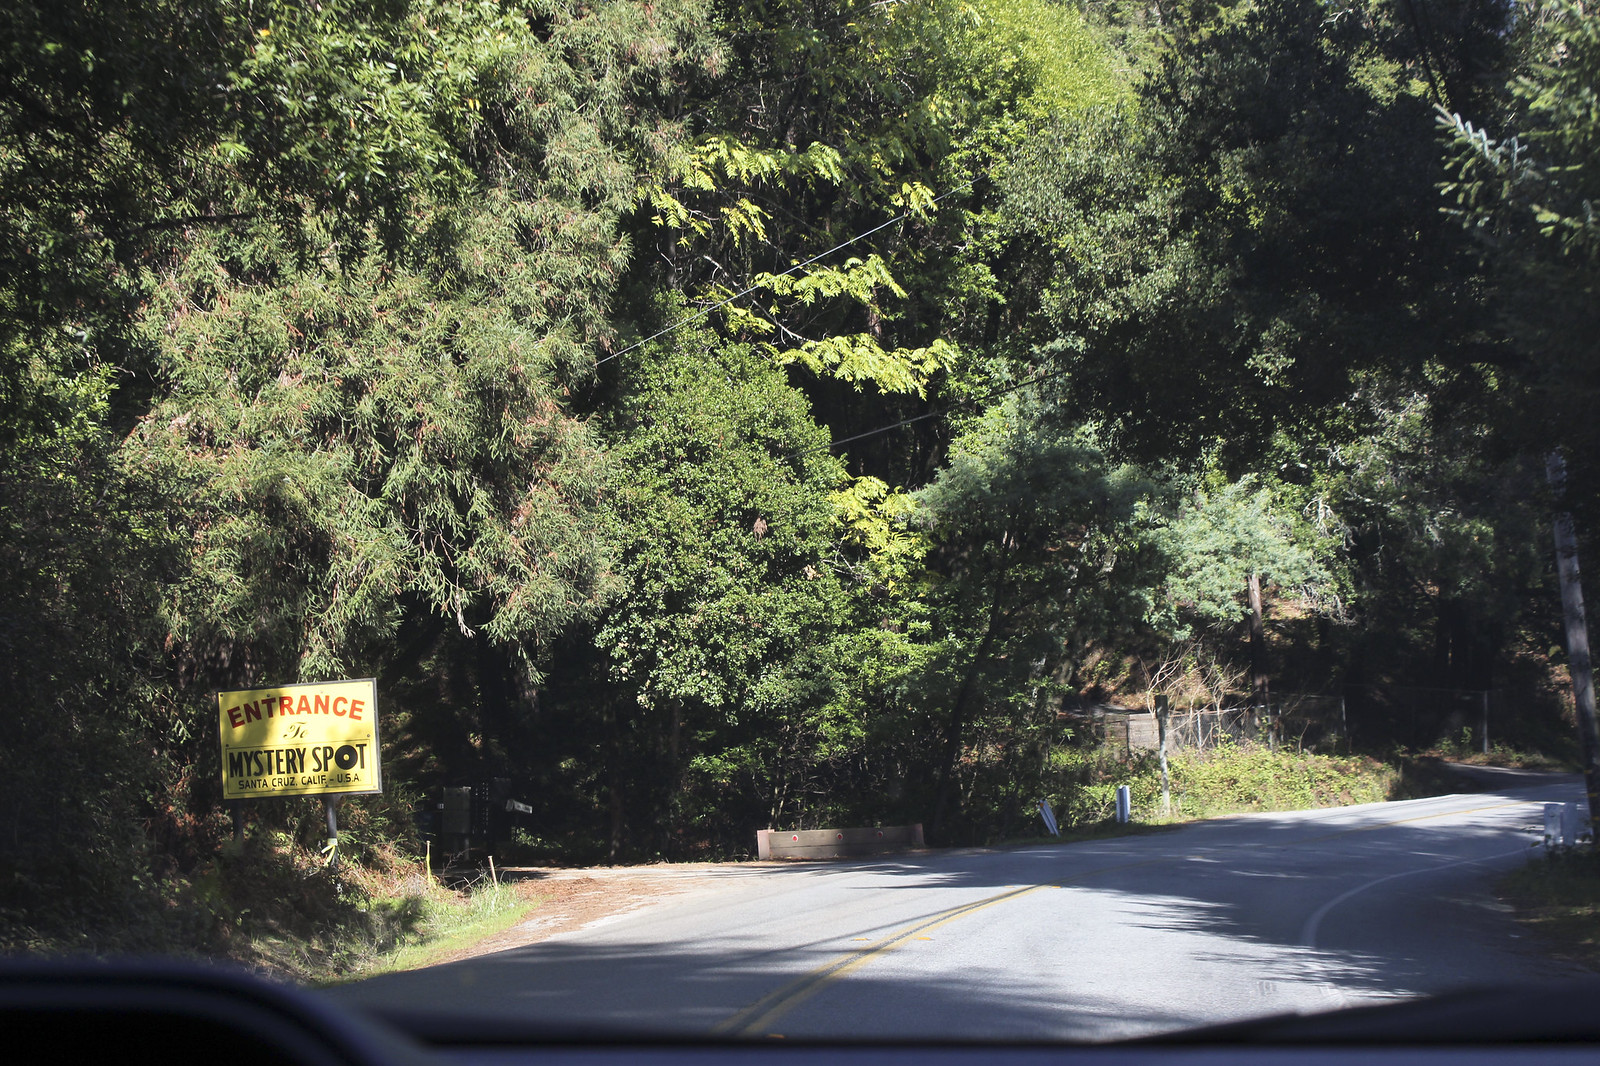 Driving into mystery spot